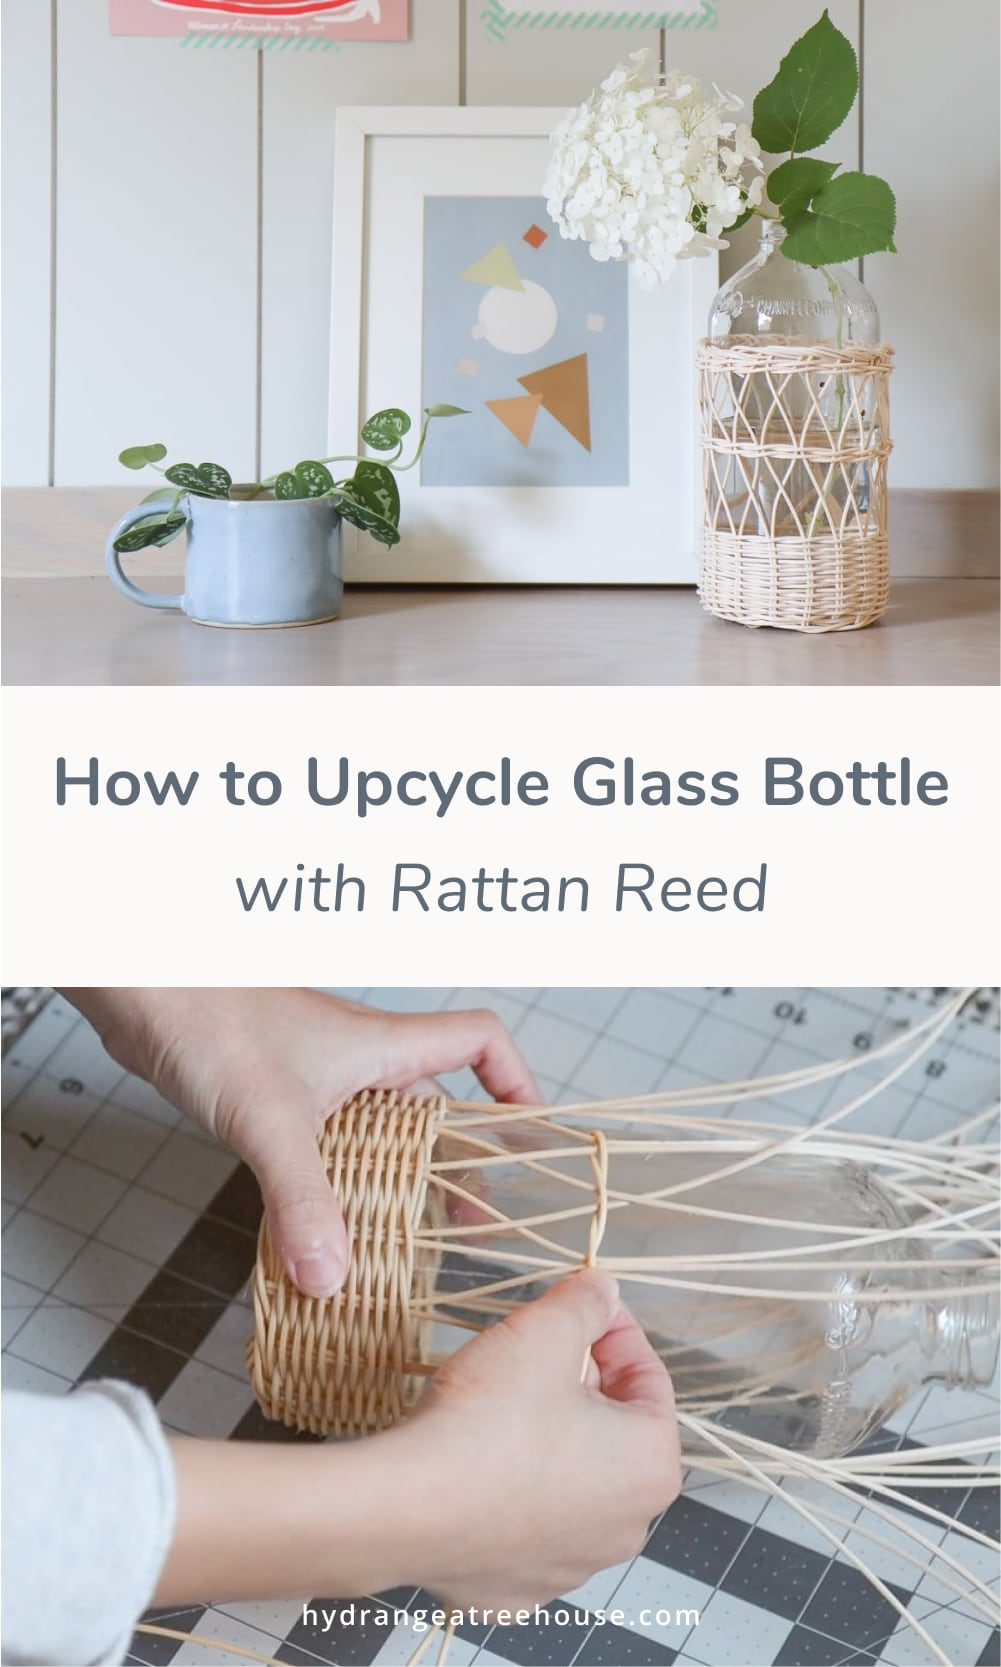 How to upcycle used glass bottles and jars with rattan reed - basket weaving for beginners